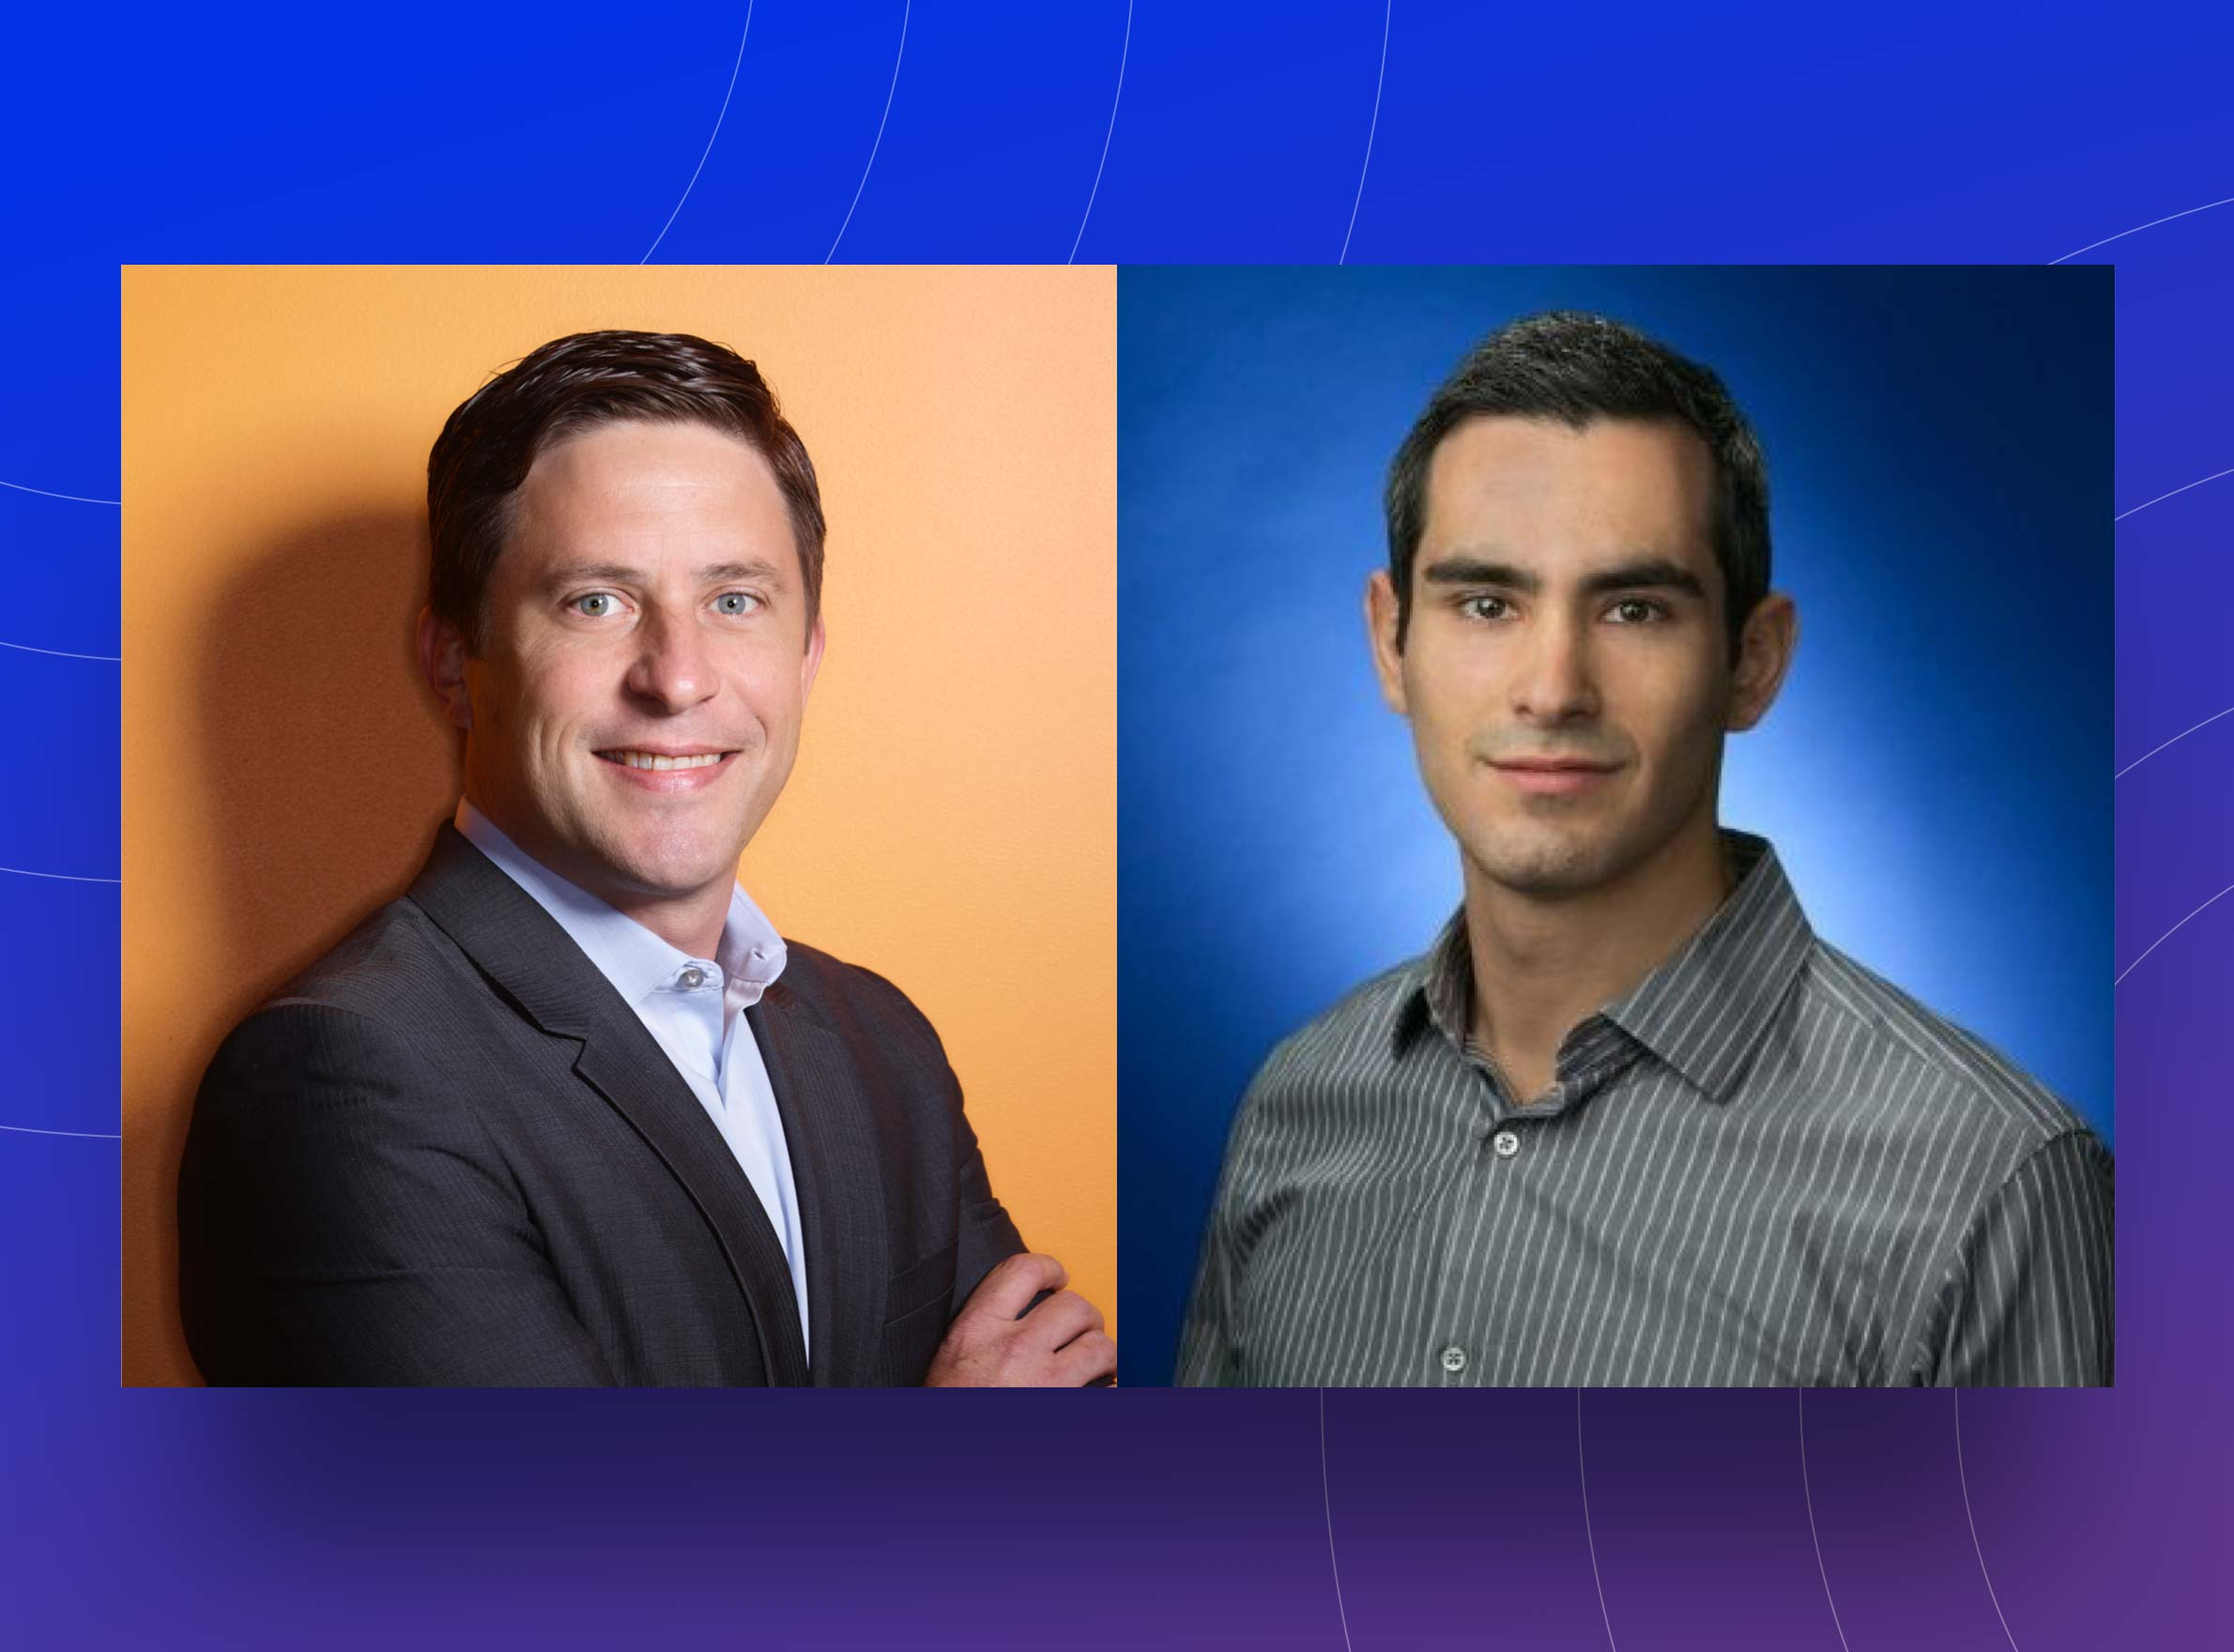 Meet our newest Board members: David Yaffe and Ryan Christensen